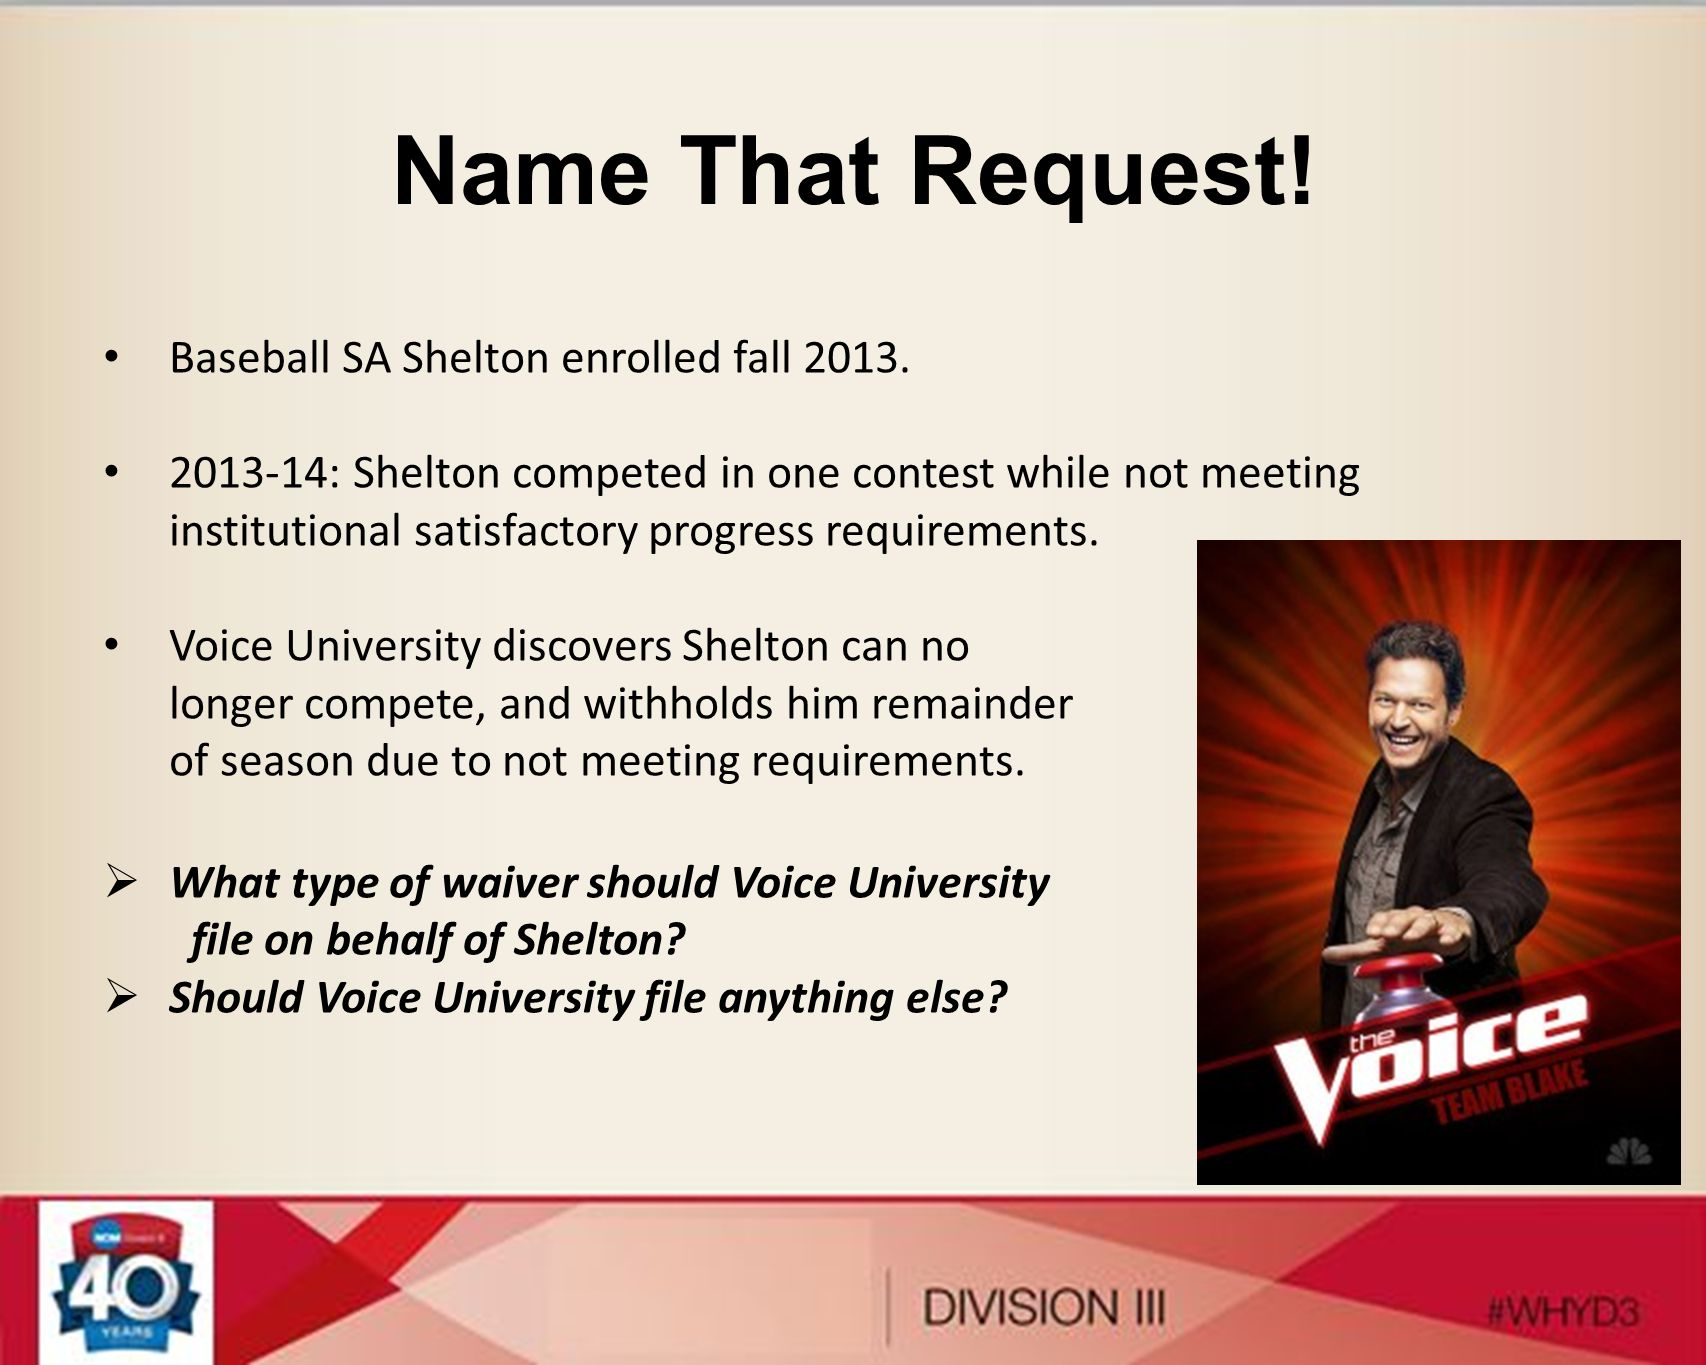 Name That Request! Baseball SA Shelton enrolled fall 2013.